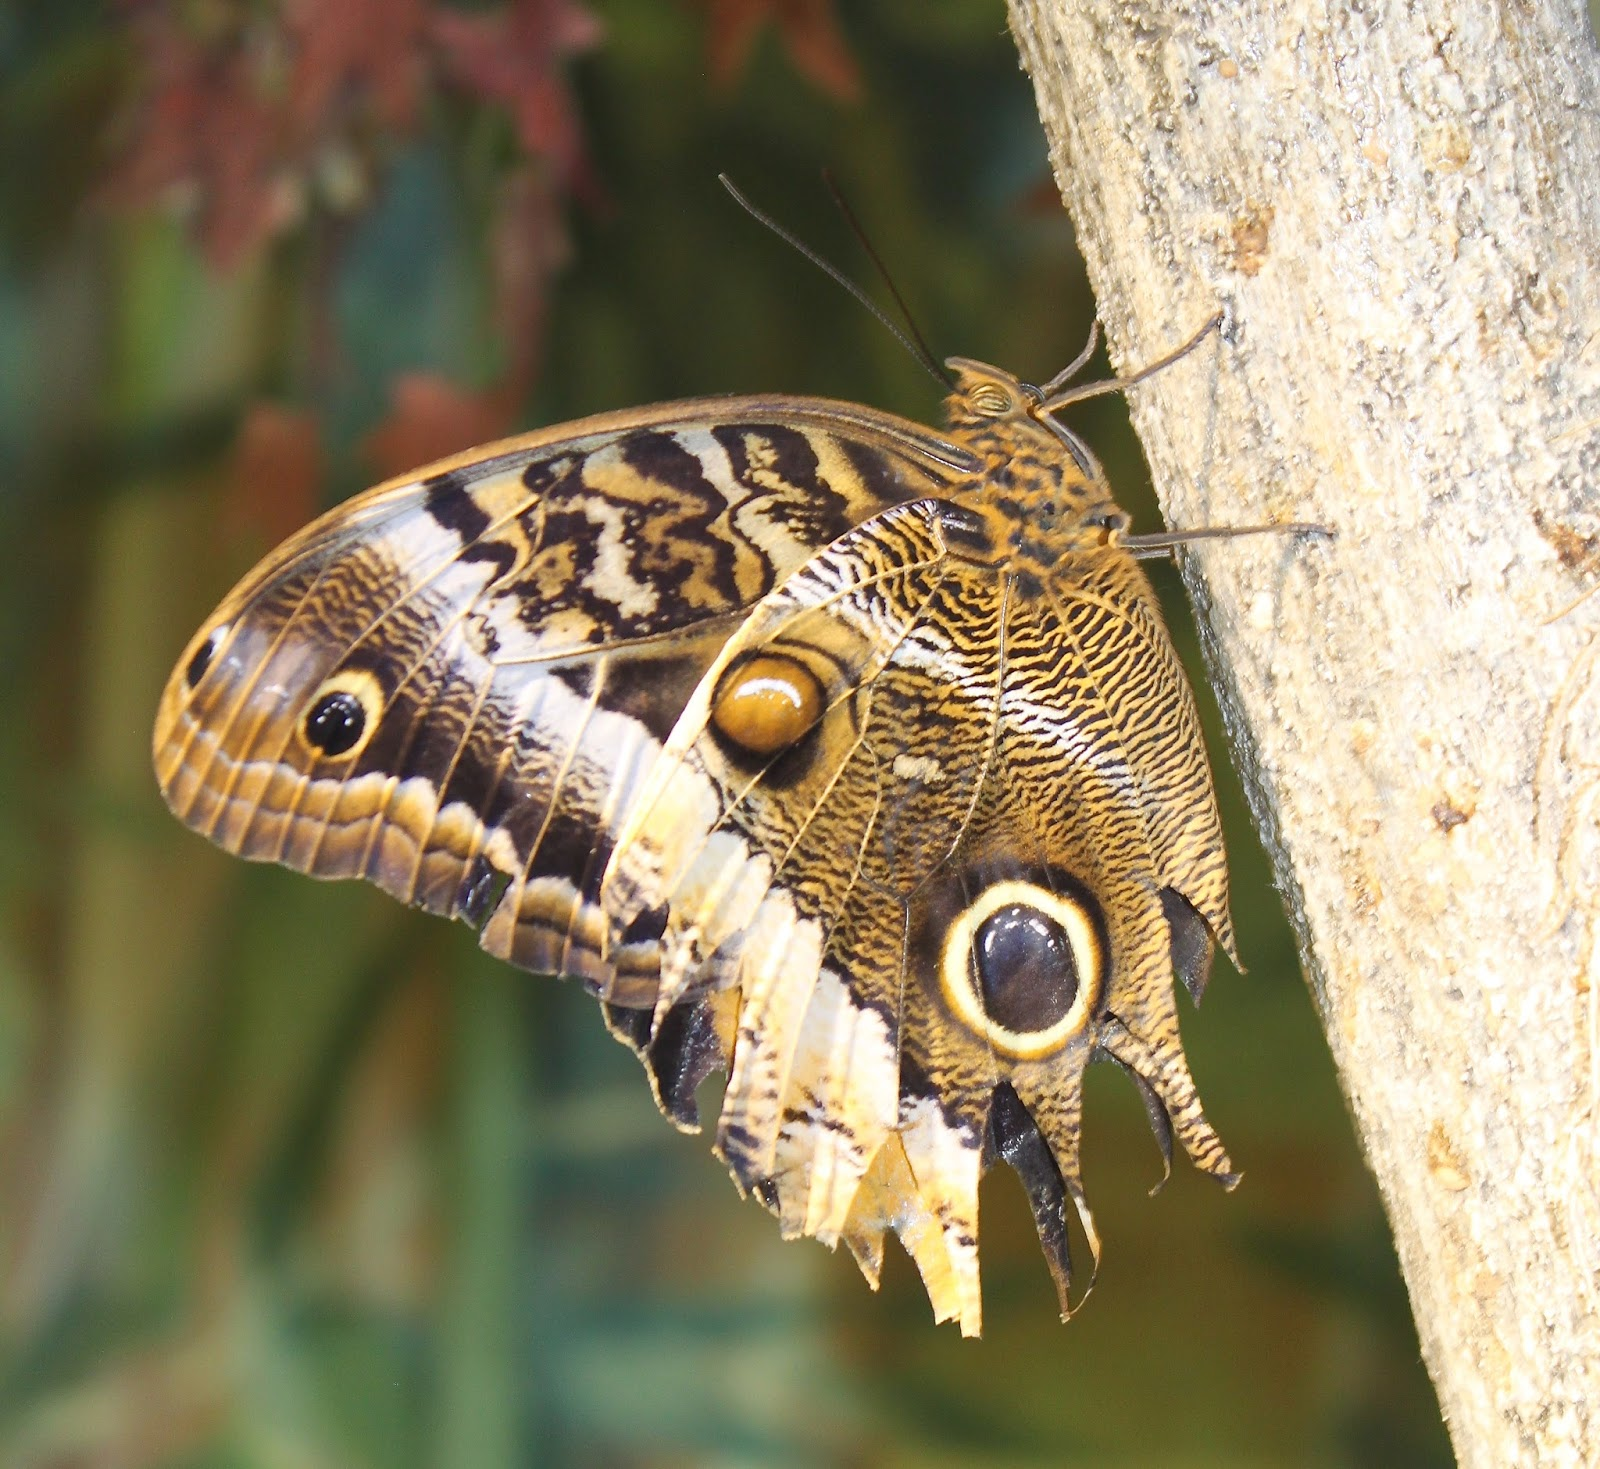 Lowcountry outdoors: 2017 New Orleans - Audubon Insectarium Visit